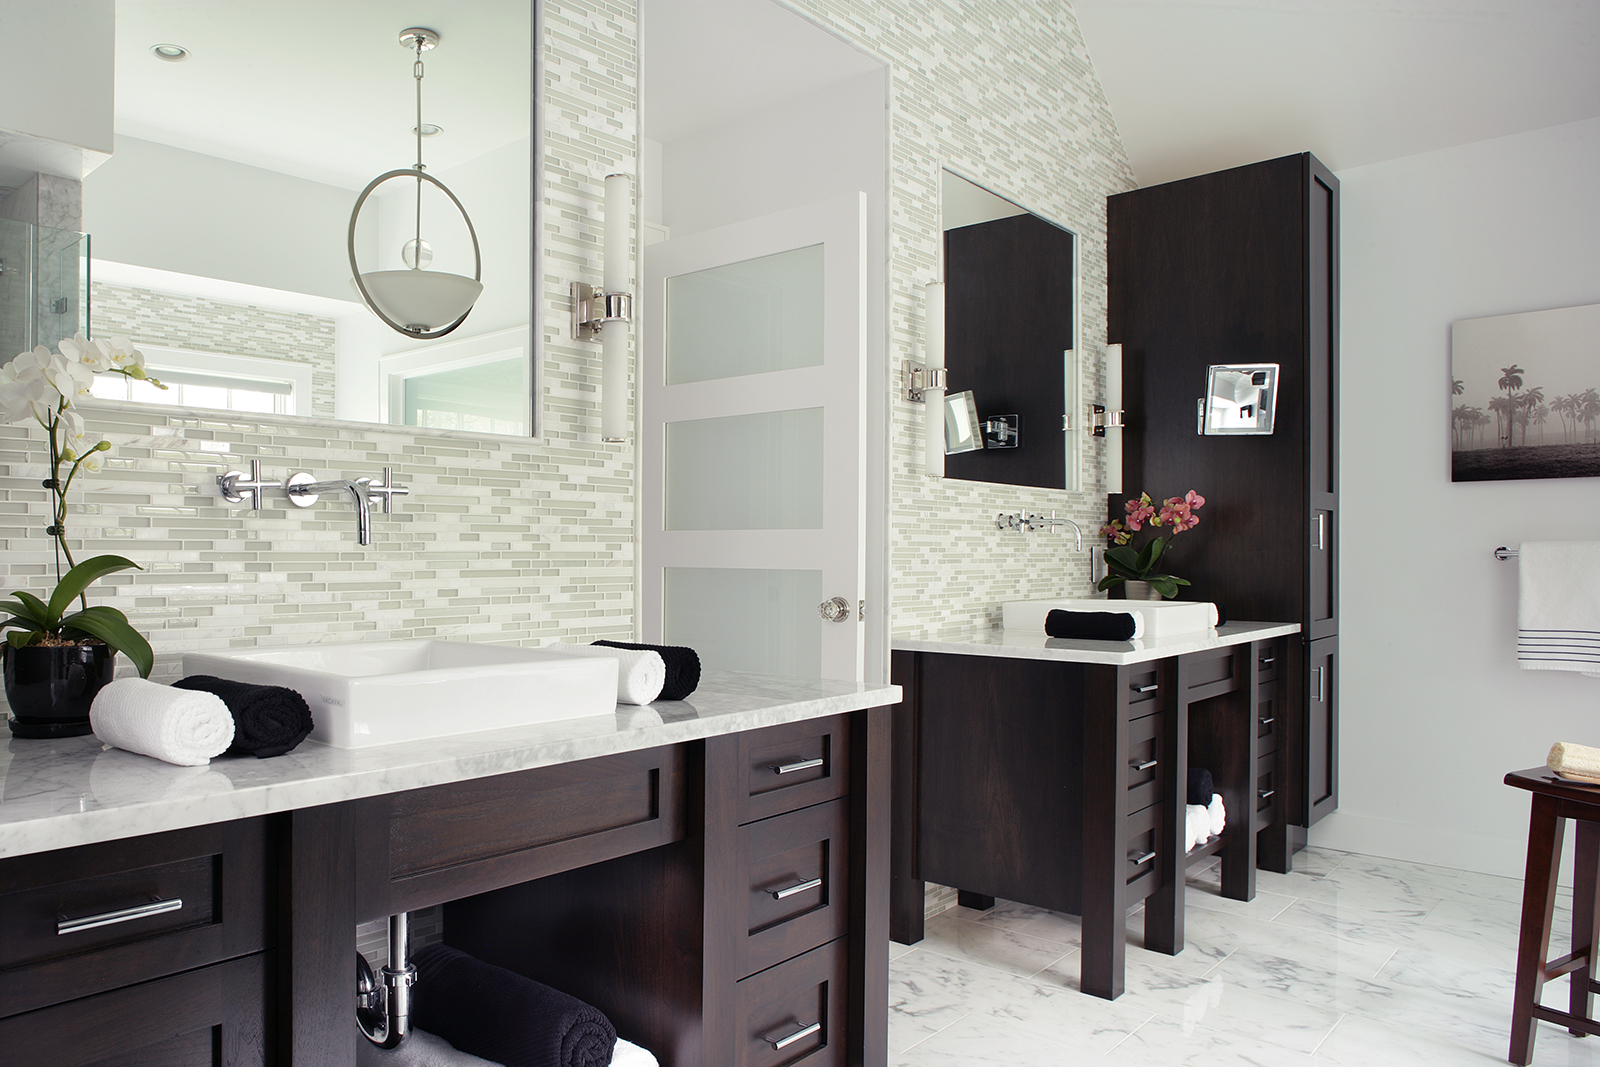 Peter salerno inc transitional bathroom wins 2015 for Bathroom ideas 2015